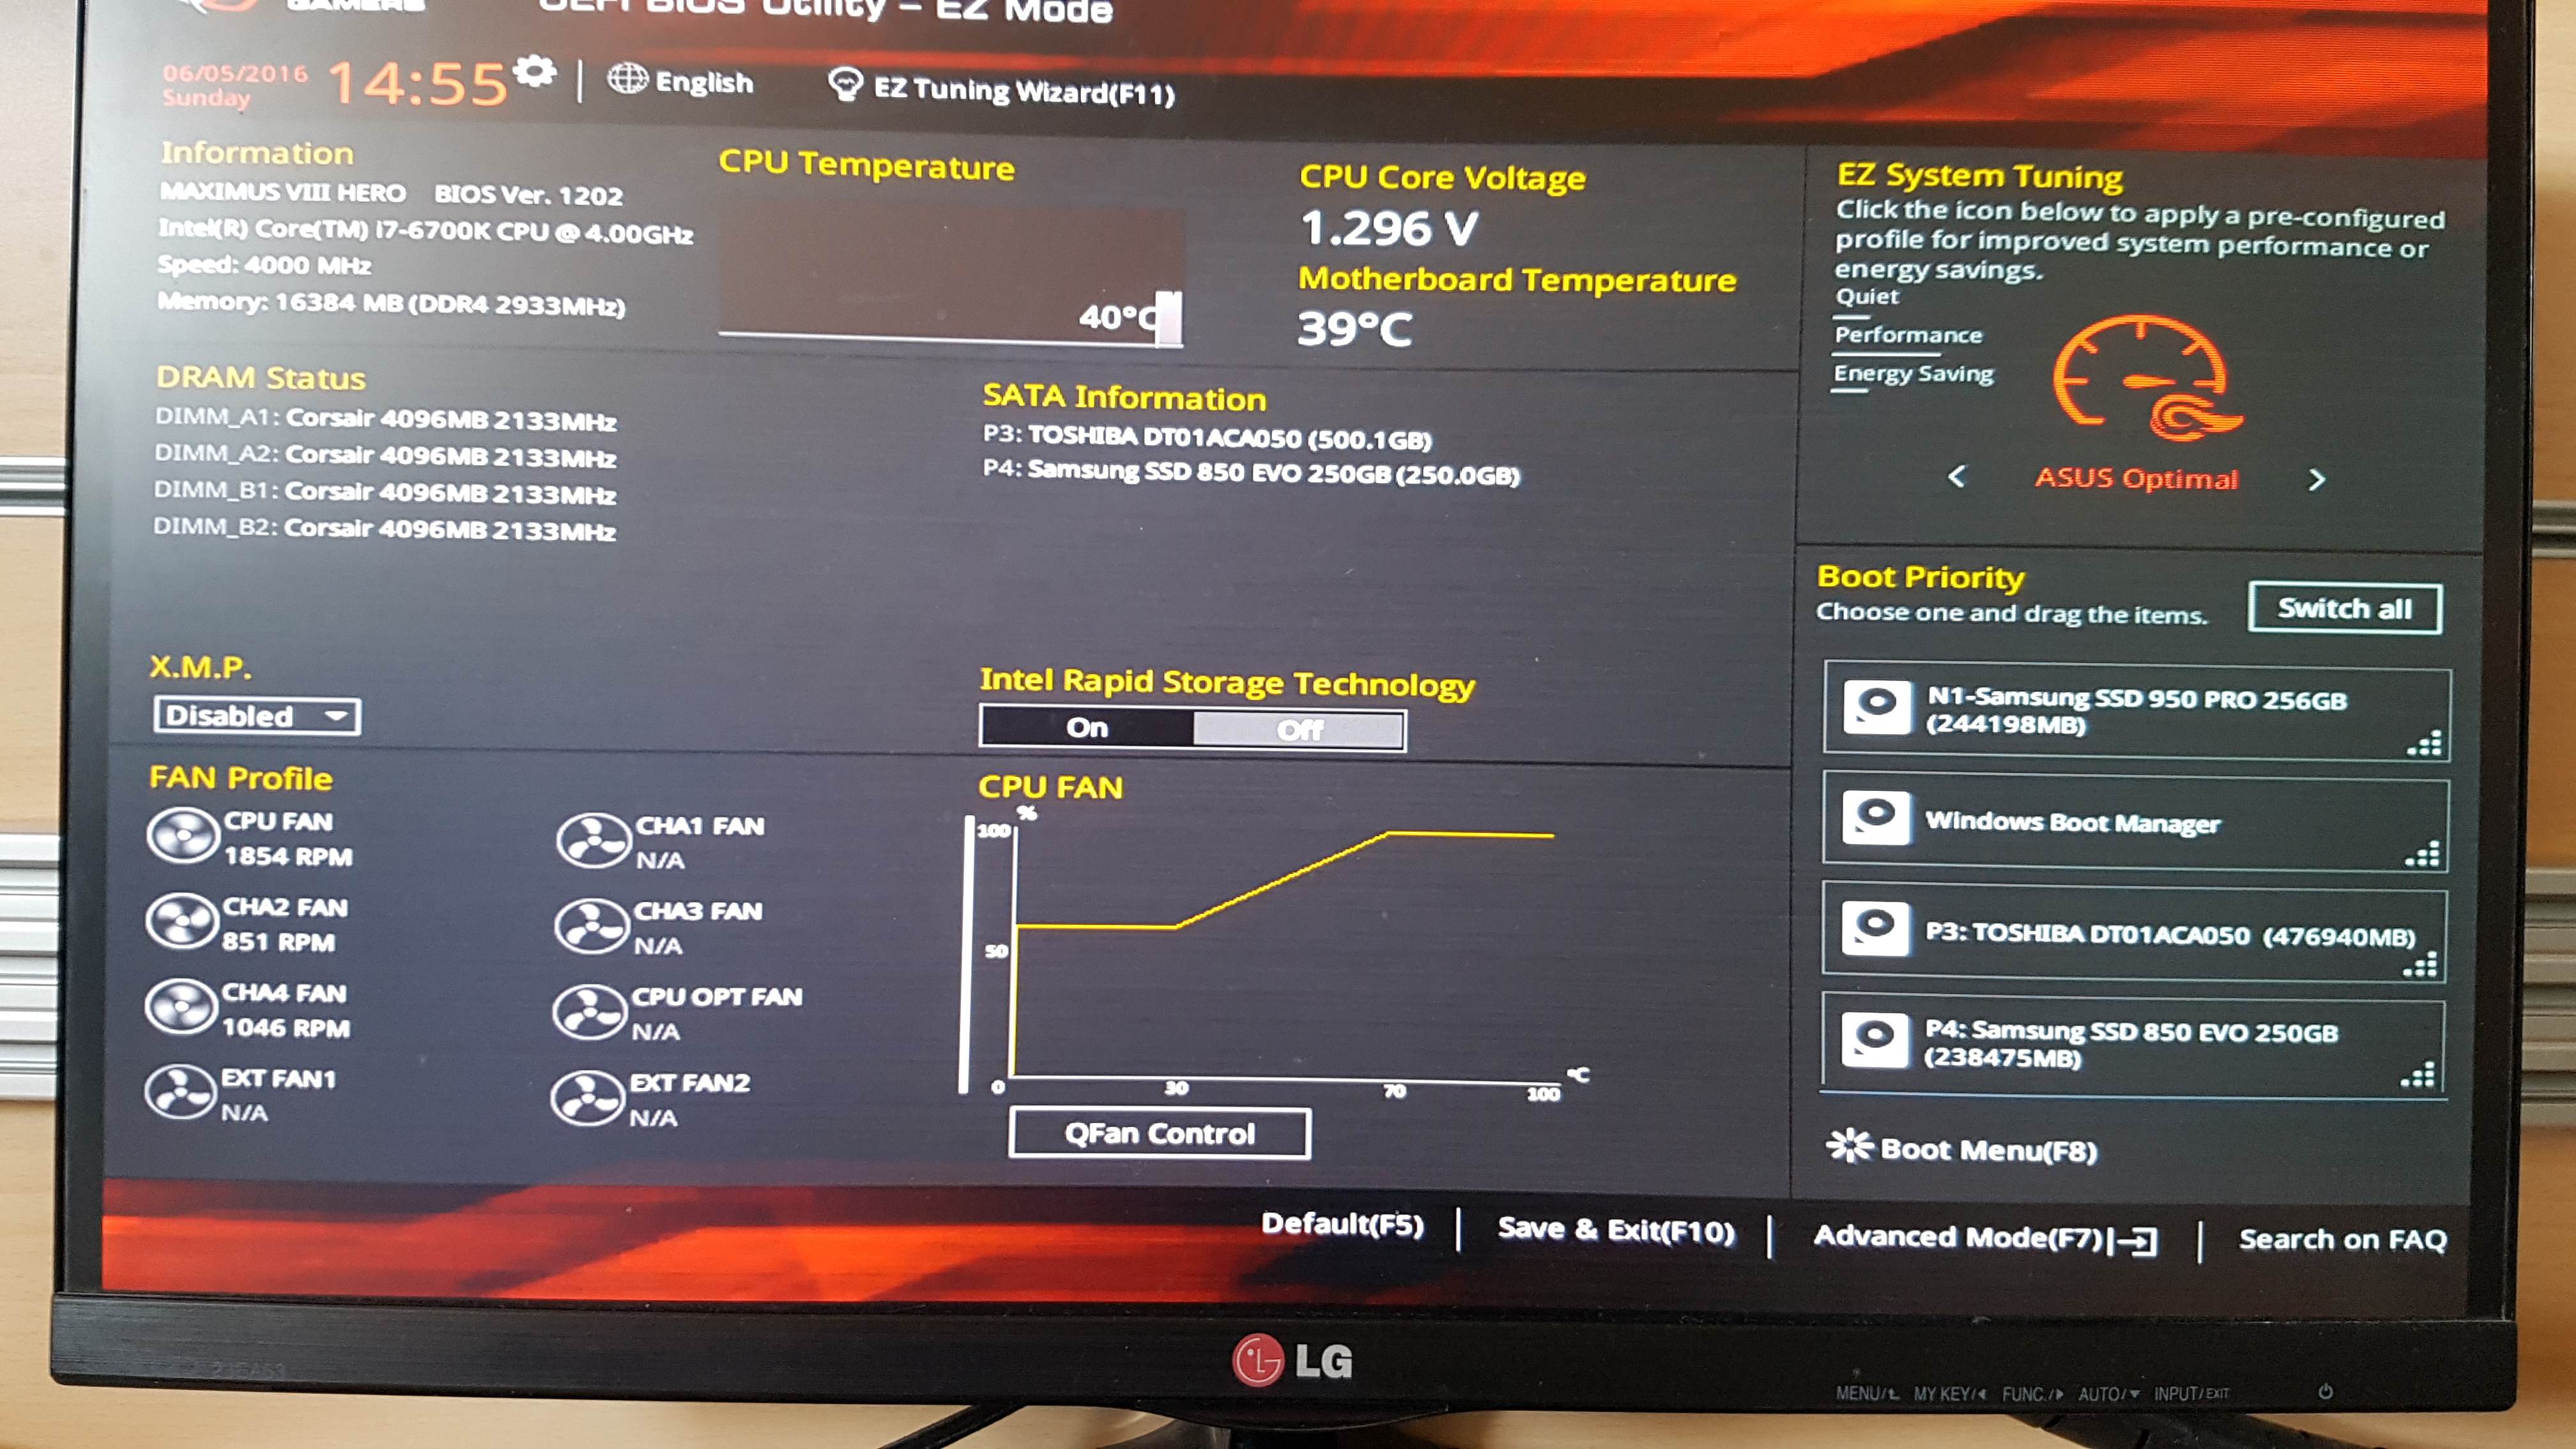 slow boot speed even with nvme ssd - Troubleshooting - Linus